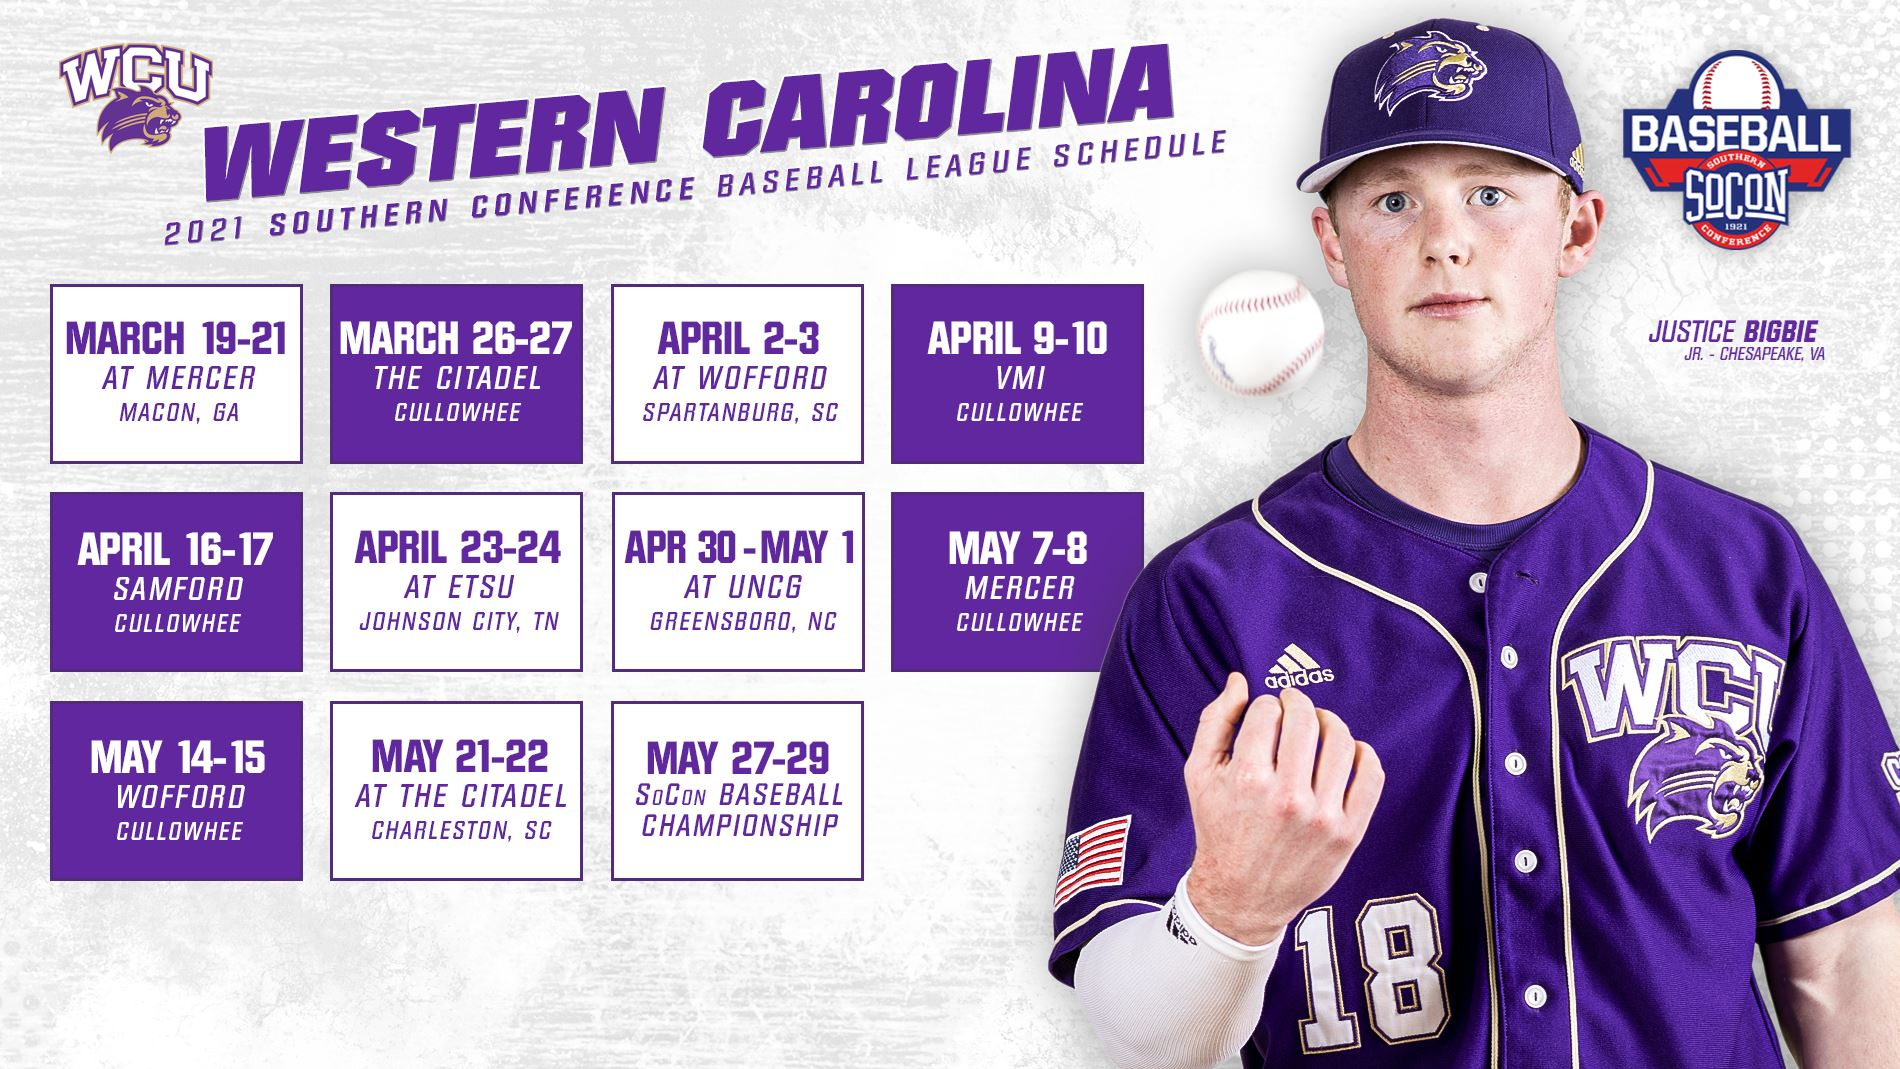 WCU's SoCon Baseball Schedule